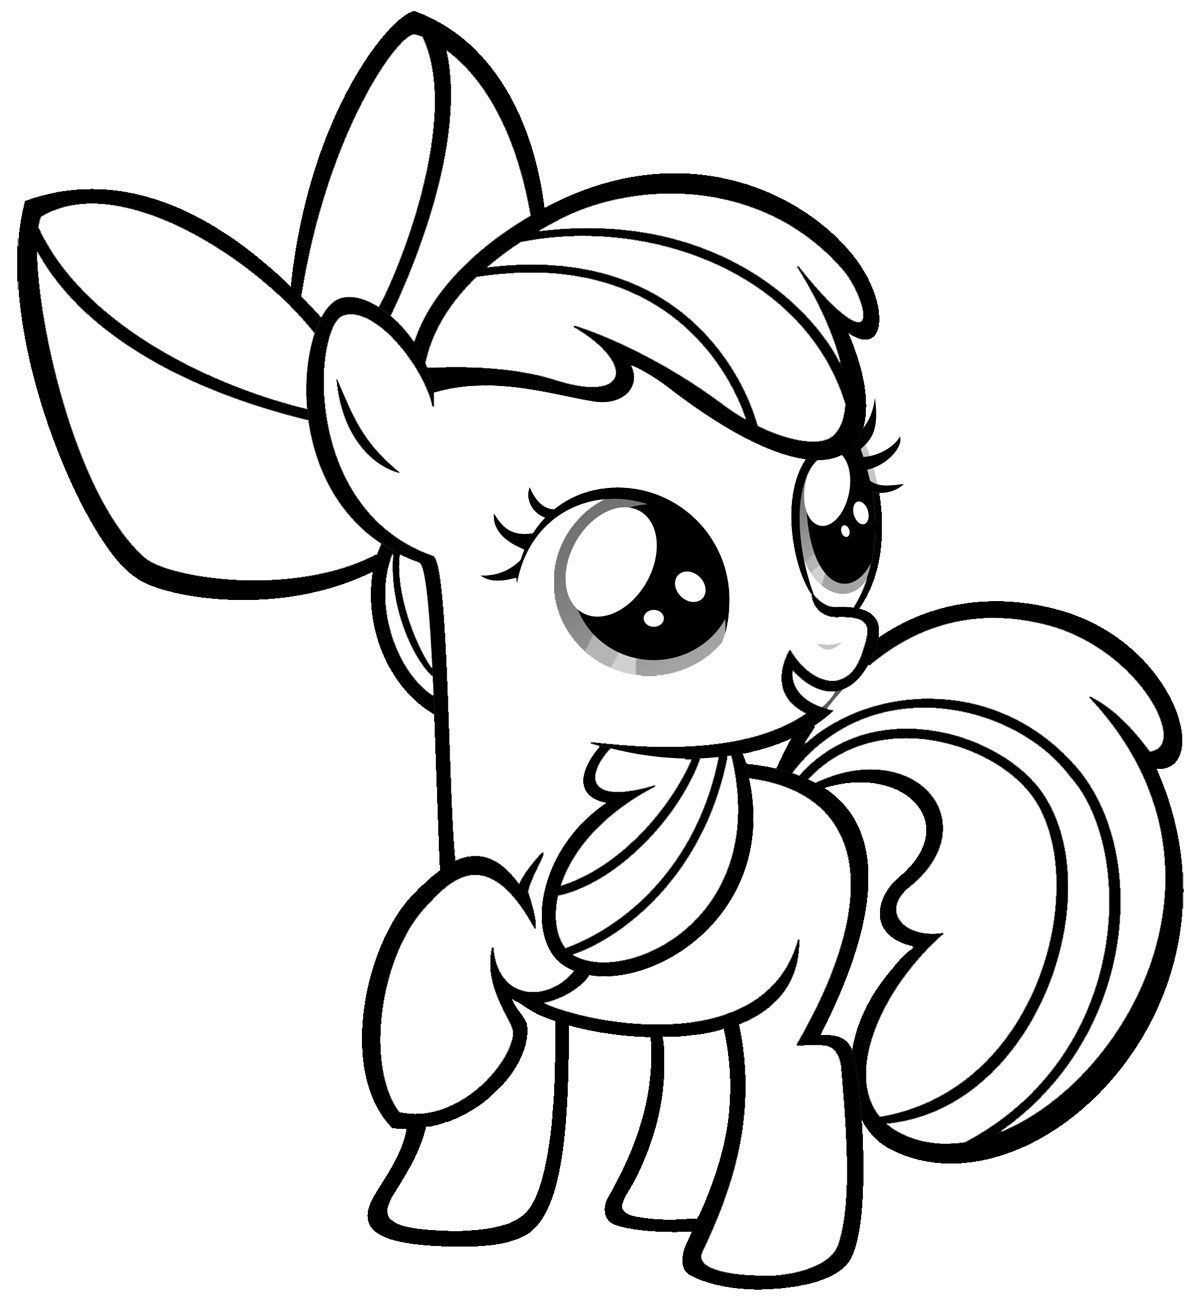 My little pony coloring pages to print free printable my little pony coloring pages for